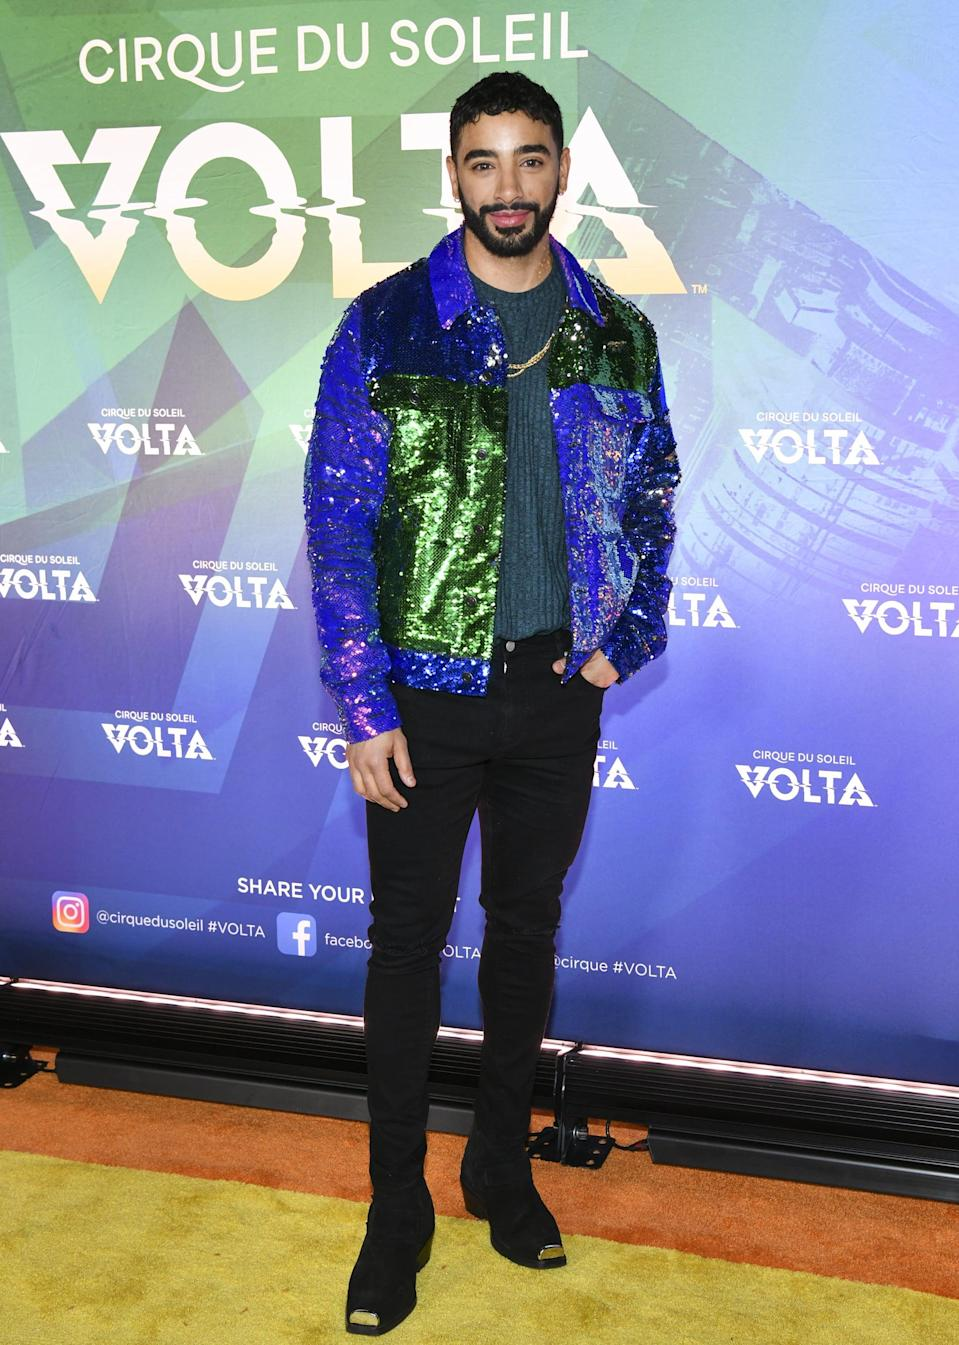 <p>Laith Ashley is an artist, singer, actor, and model who broke onto the scene in <b>RuPaul's Drag Race</b> and <b>Pose</b>. He transitioned medically at 24 and made major waves modeling Calvin Klein underwear, then going on to work with Barney's New York, Diesel, and Abercrombie &amp; Fitch.</p>